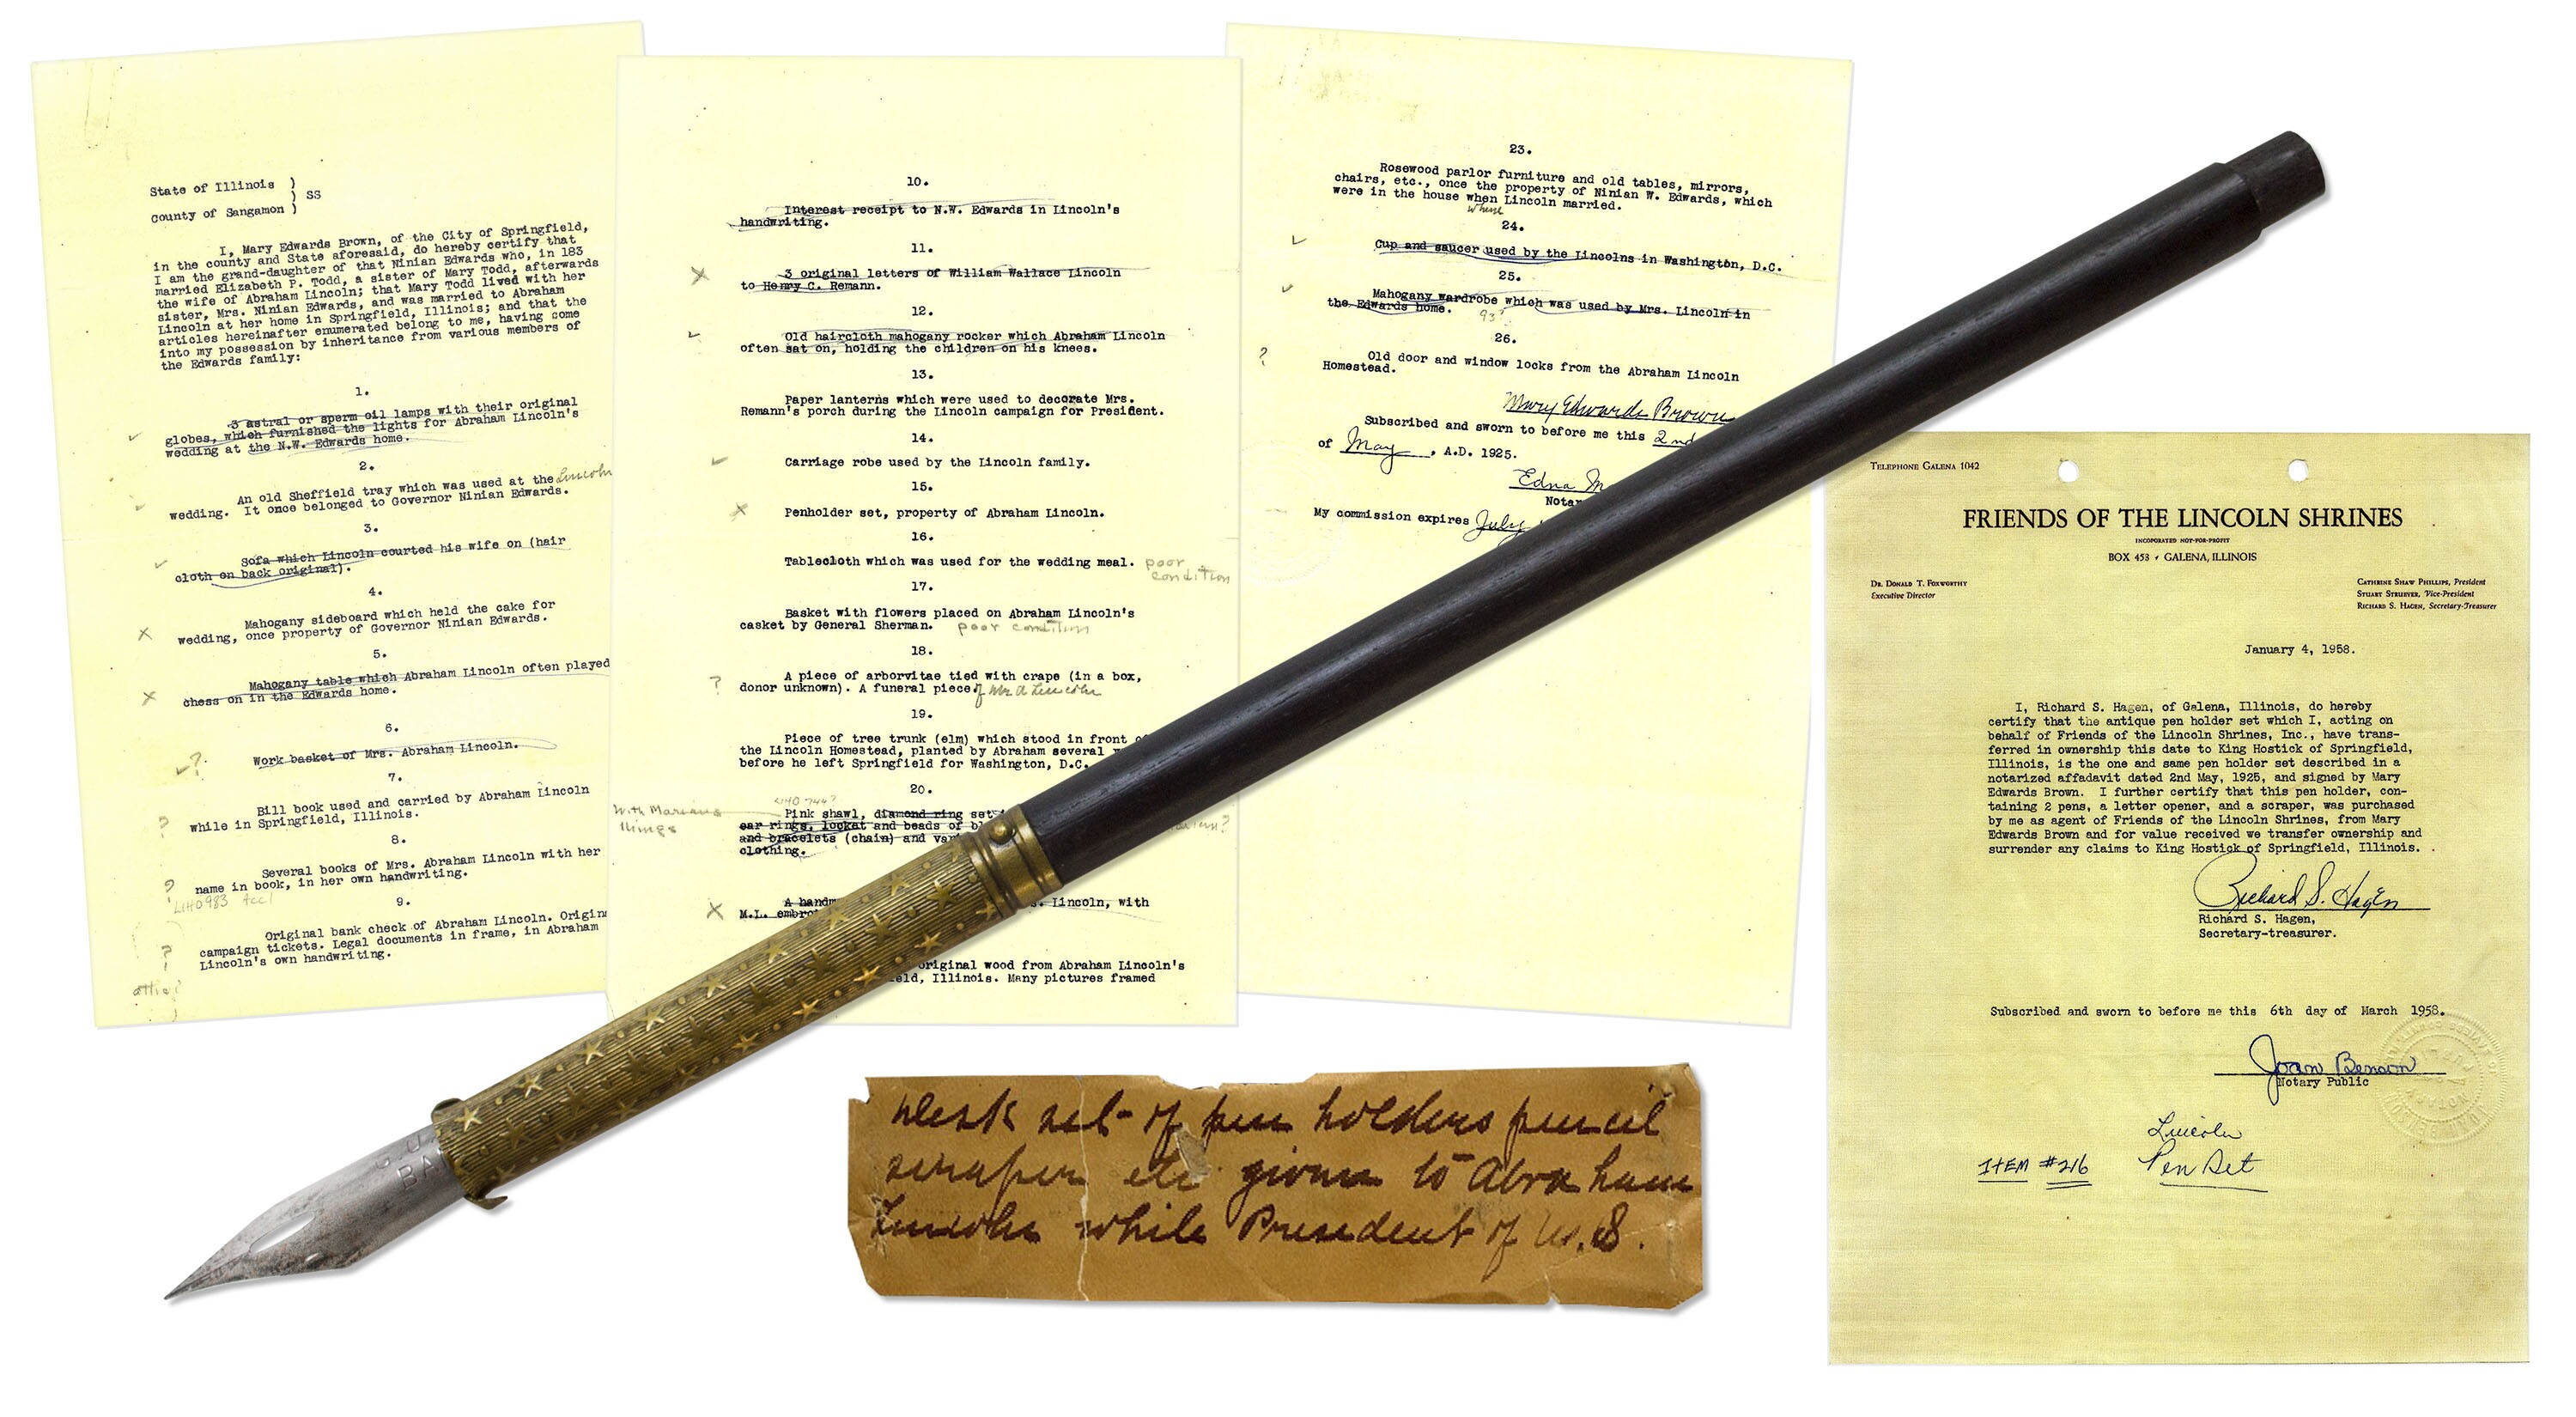 $41,250 for Abraham Lincoln\'s fountain pen at auction